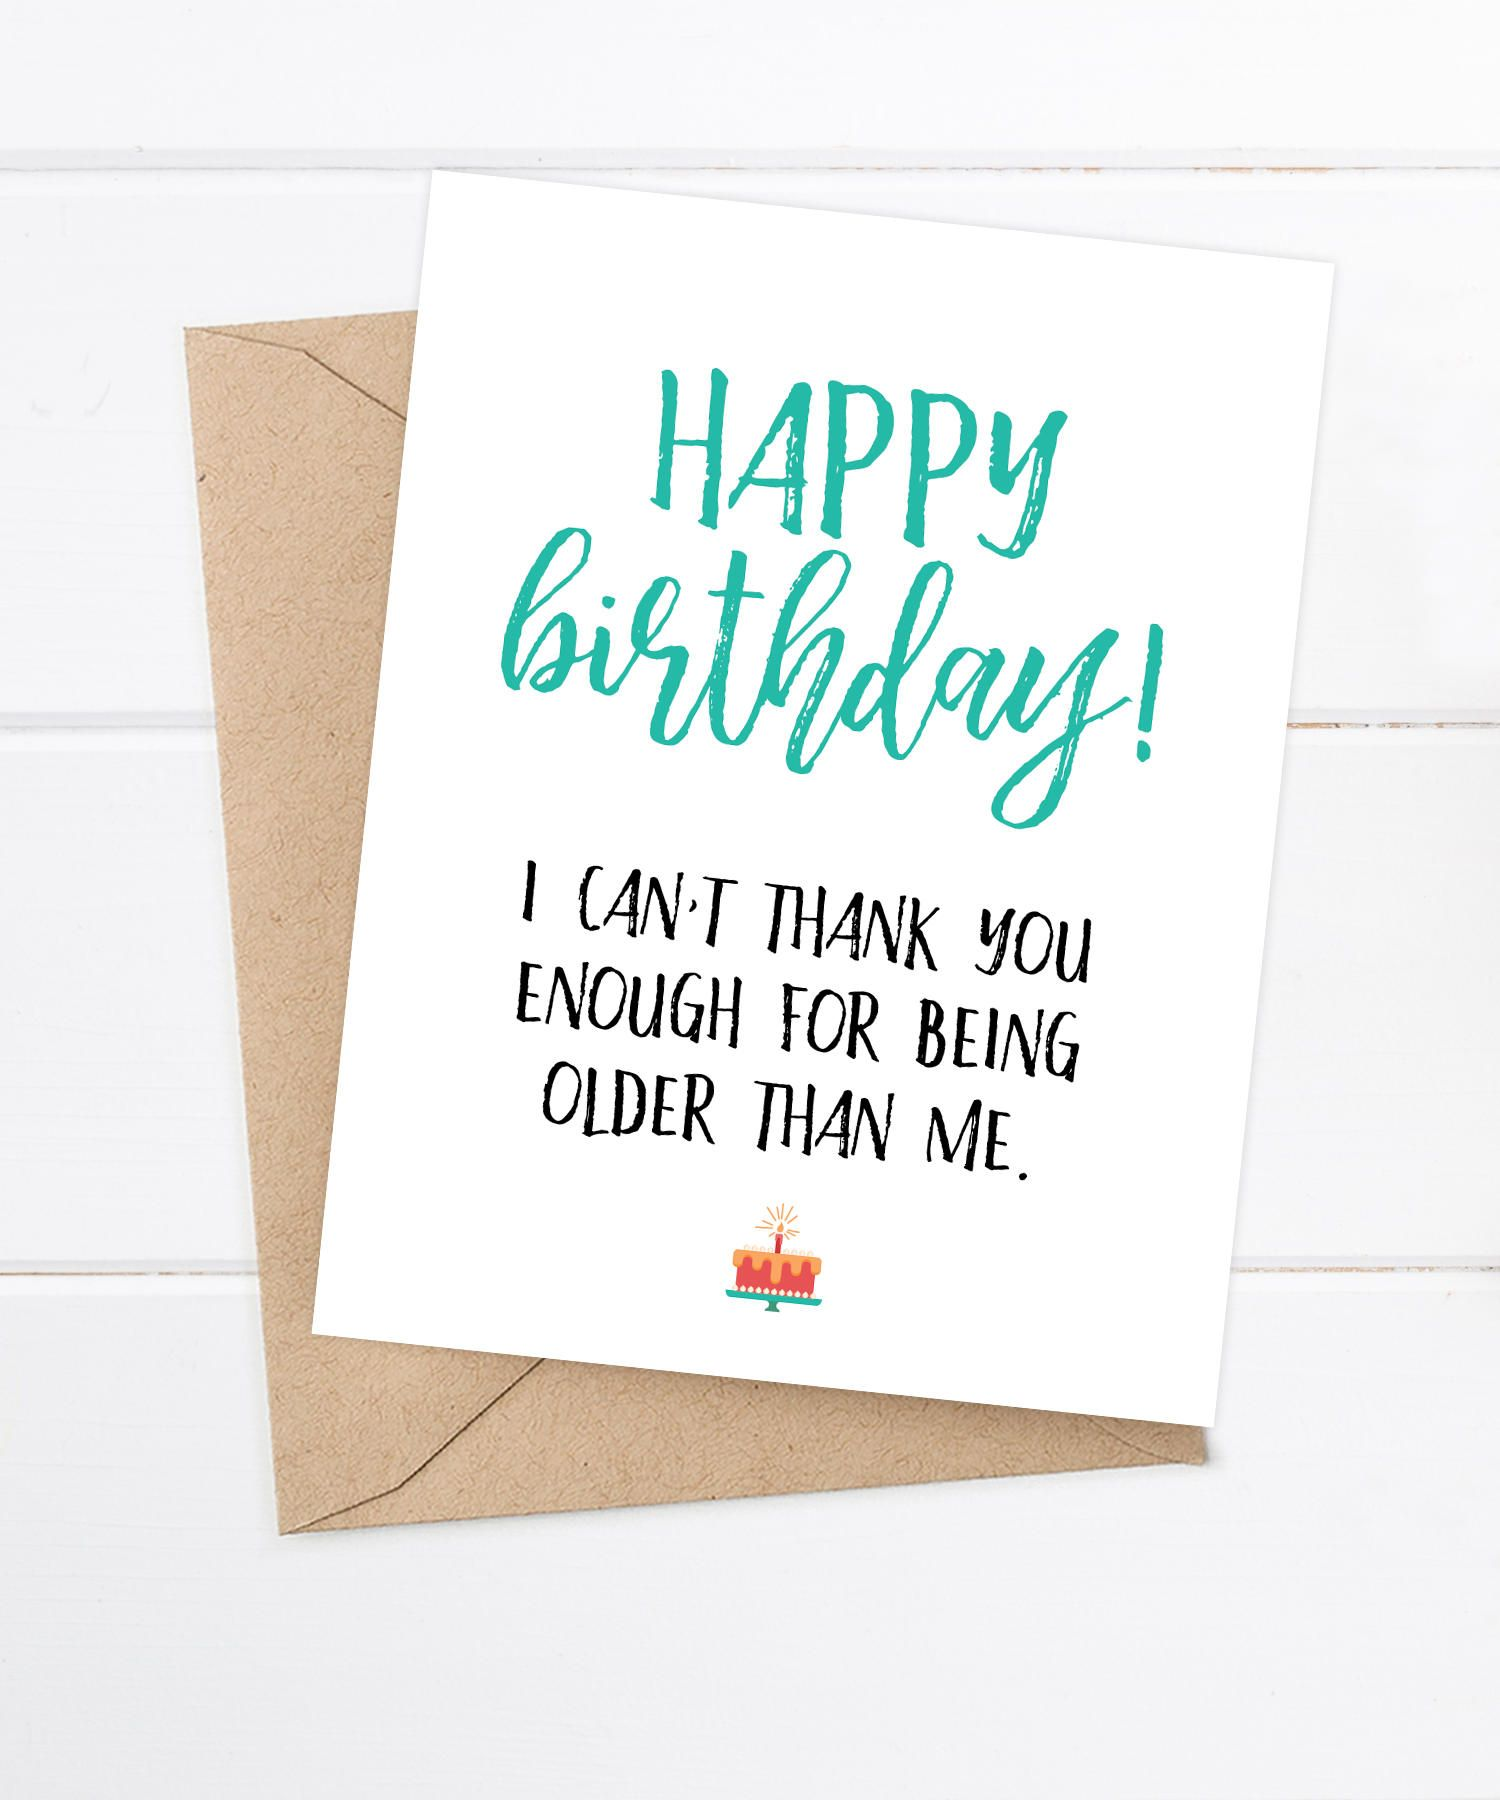 Pin by heyar padron on funny birthday cards pinterest cards funny birthday card older sister card brother birthday funny snarky card i cant thank you enough for being older than me by flairandpaper on etsy kristyandbryce Choice Image